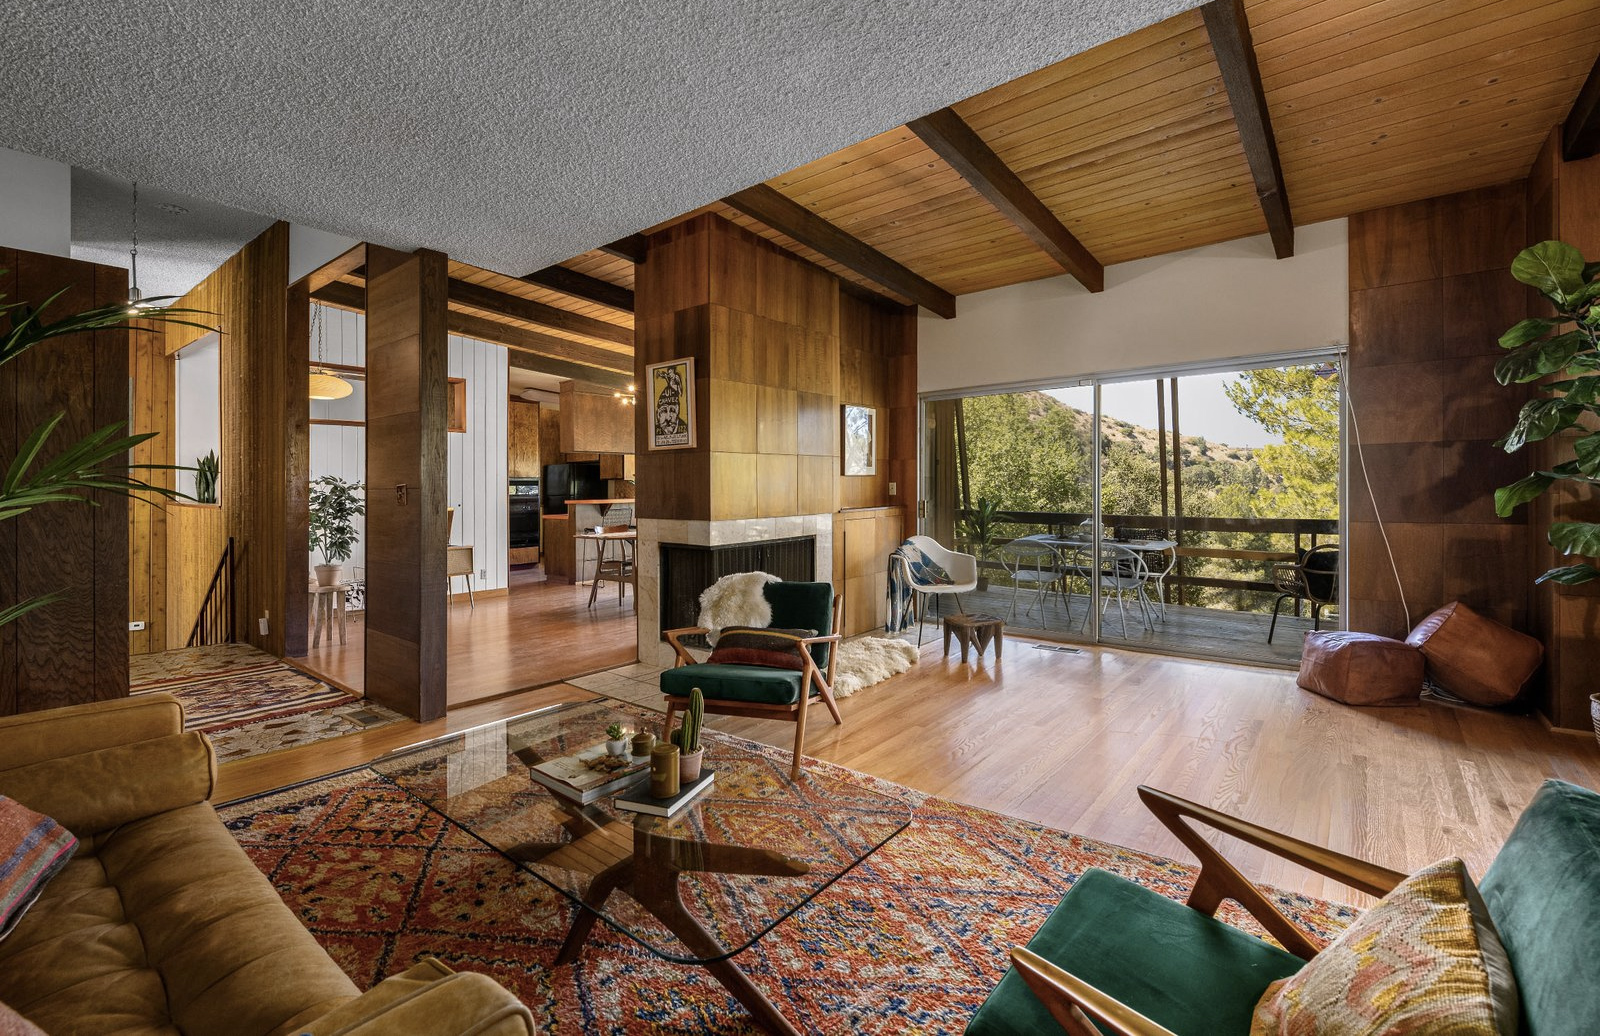 Gus Stamos' 1968 home in Glendale California is a timecapsule of midcentury modern design that has only been on the market twice